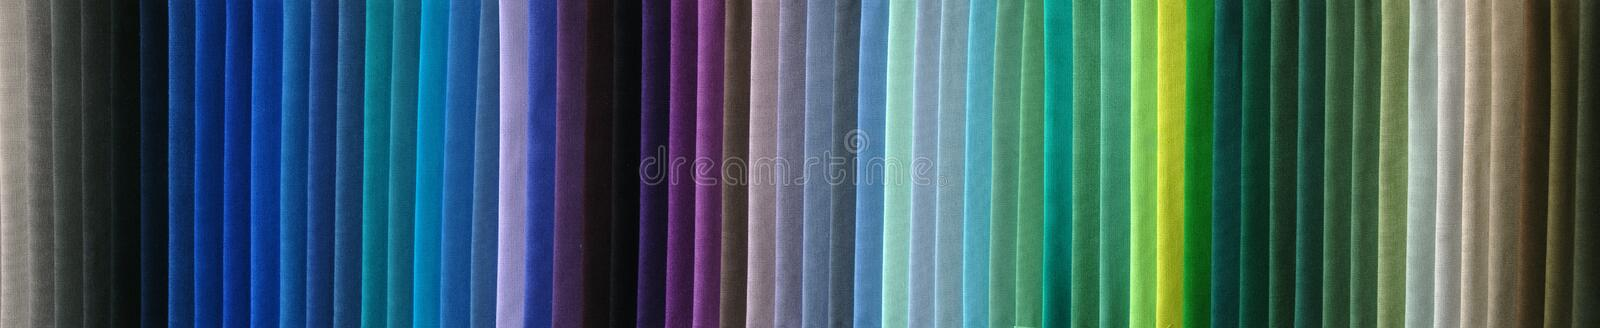 Download Fabric Color Samples Stock Images - Image: 5021054